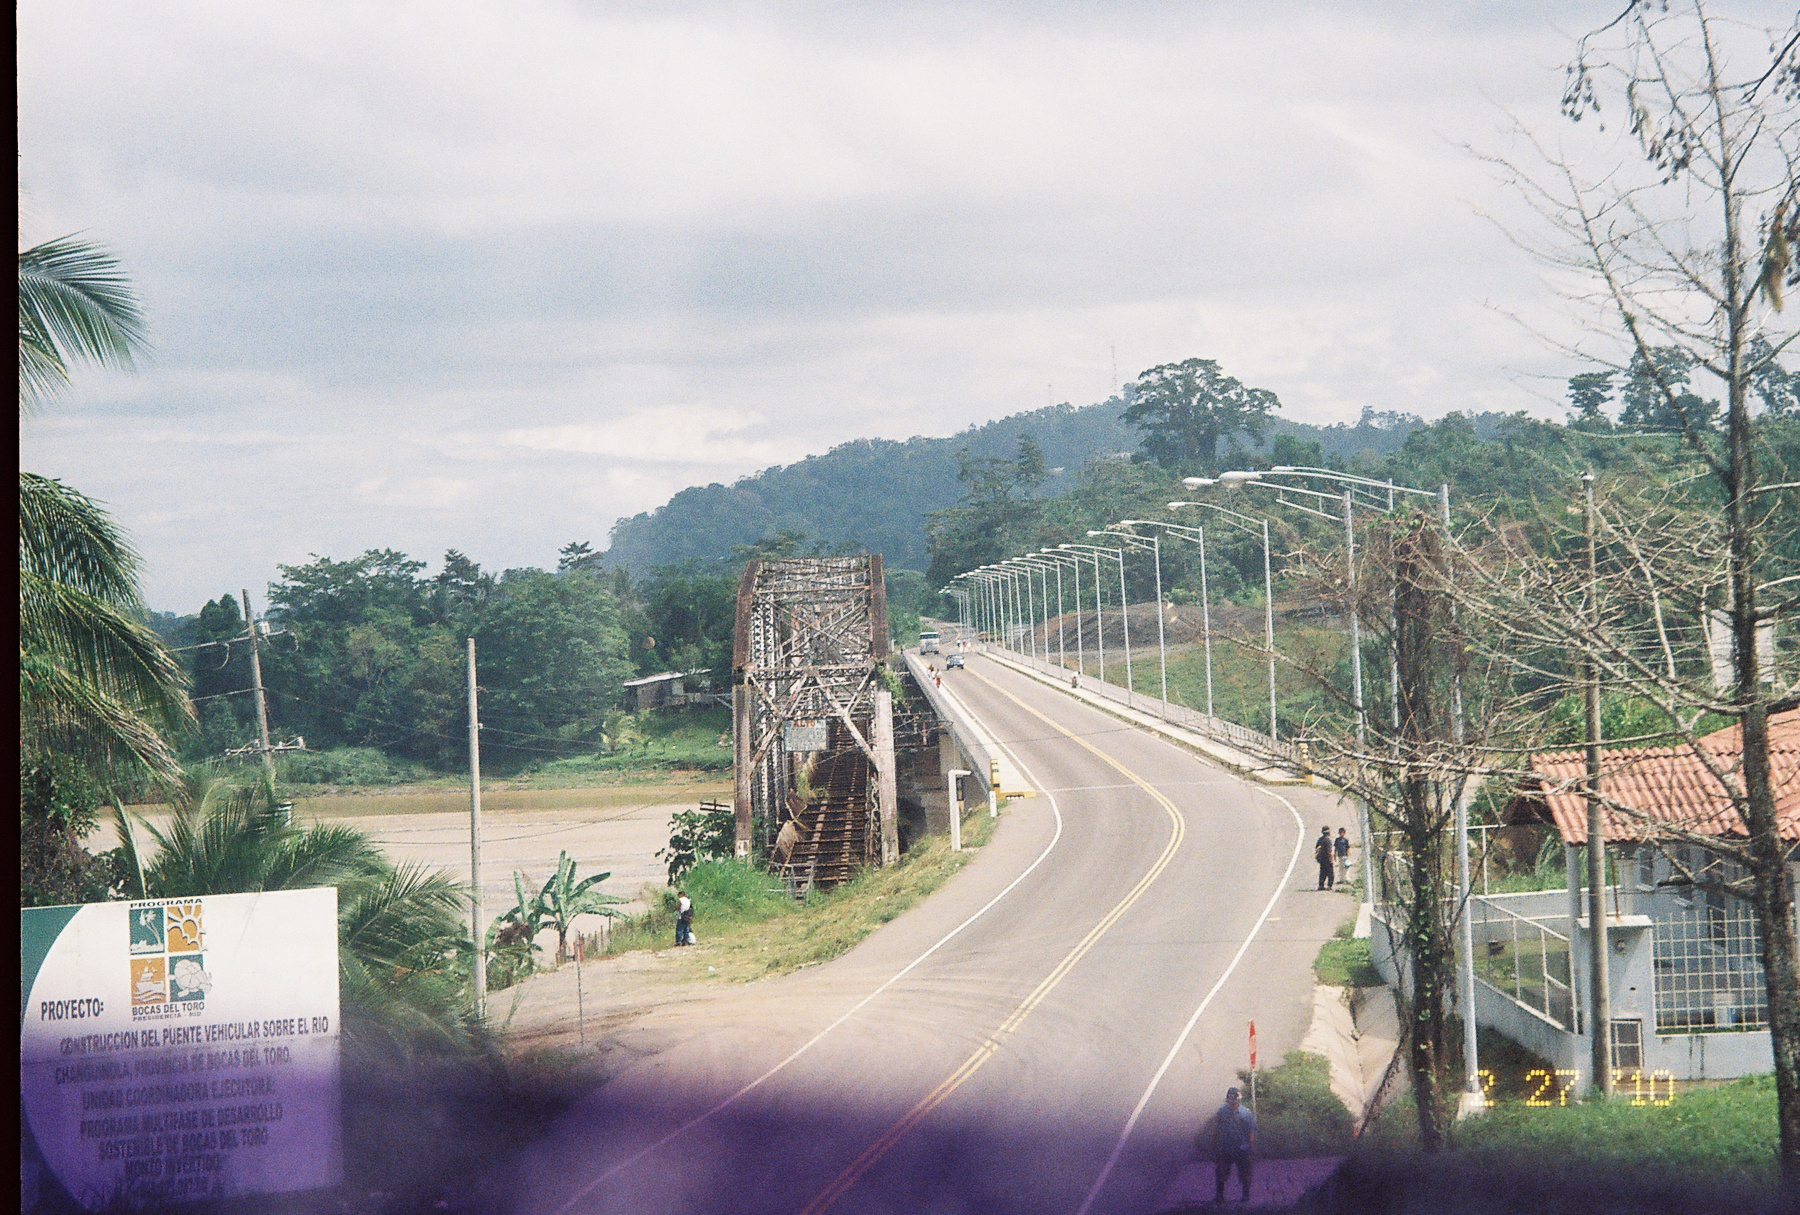 The newly completed bridge over the Rio Changuinola